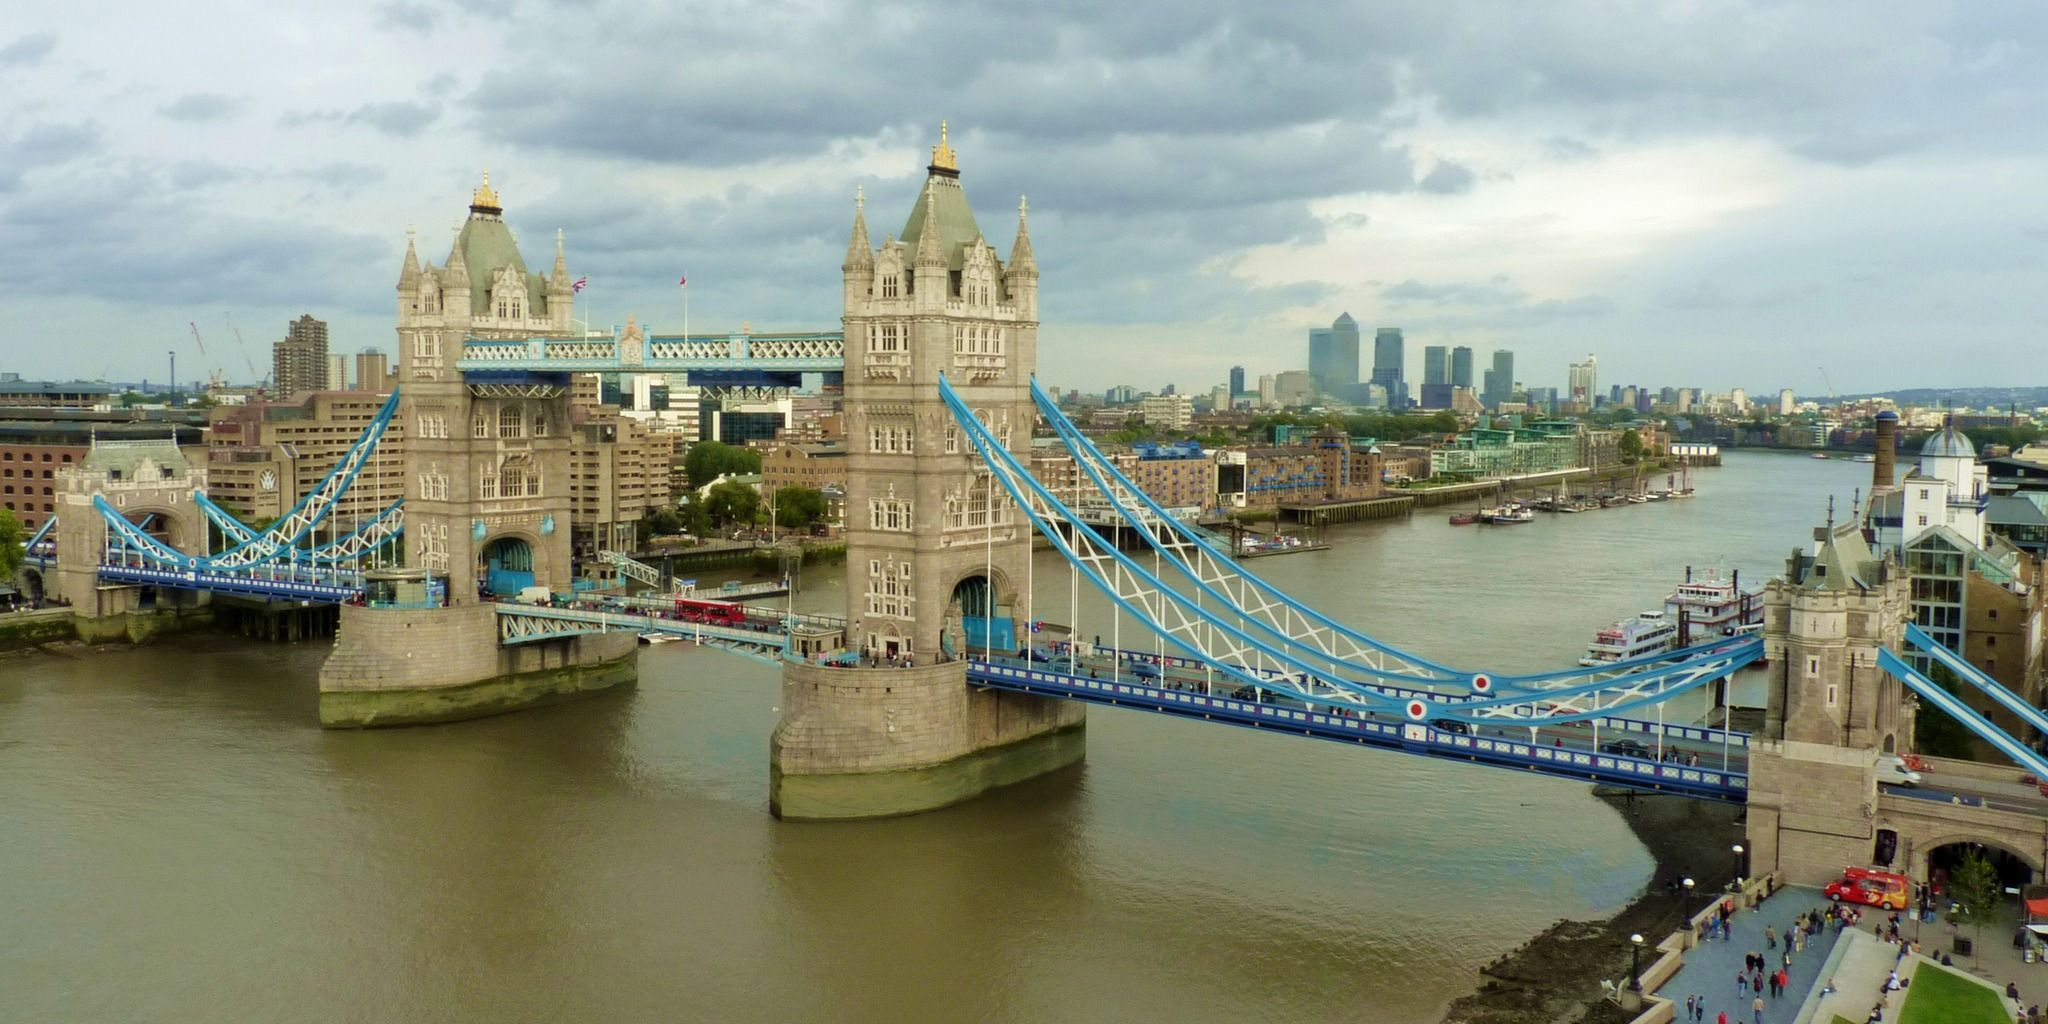 b15e23f230e6 Tower Bridge | Art | Best attractions in london, Famous bridges ...